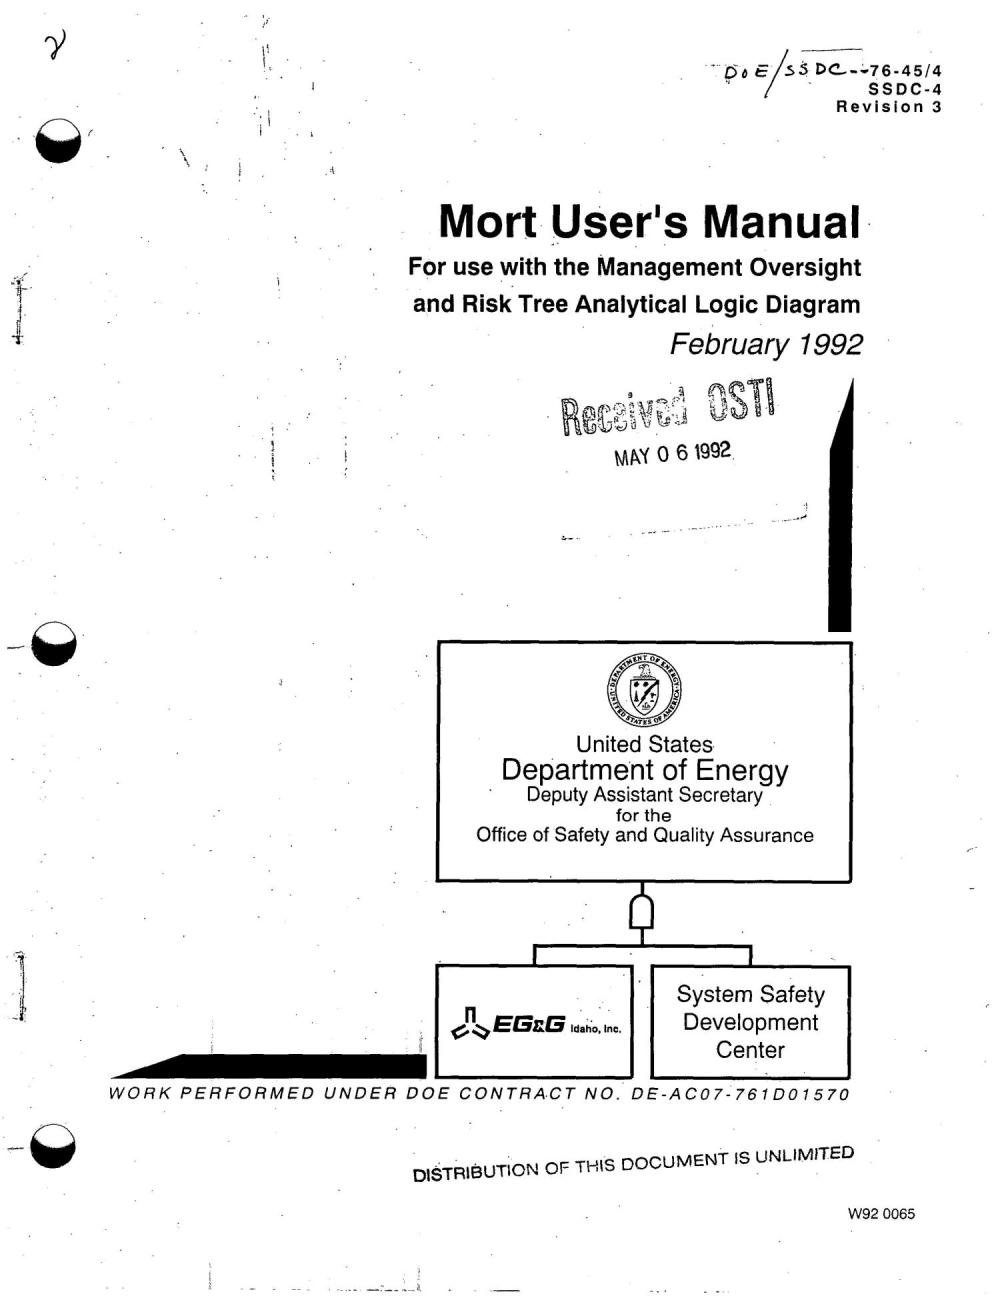 medium resolution of mort user s manual for use with the management oversight and risk tree analytical logic diagram digital library